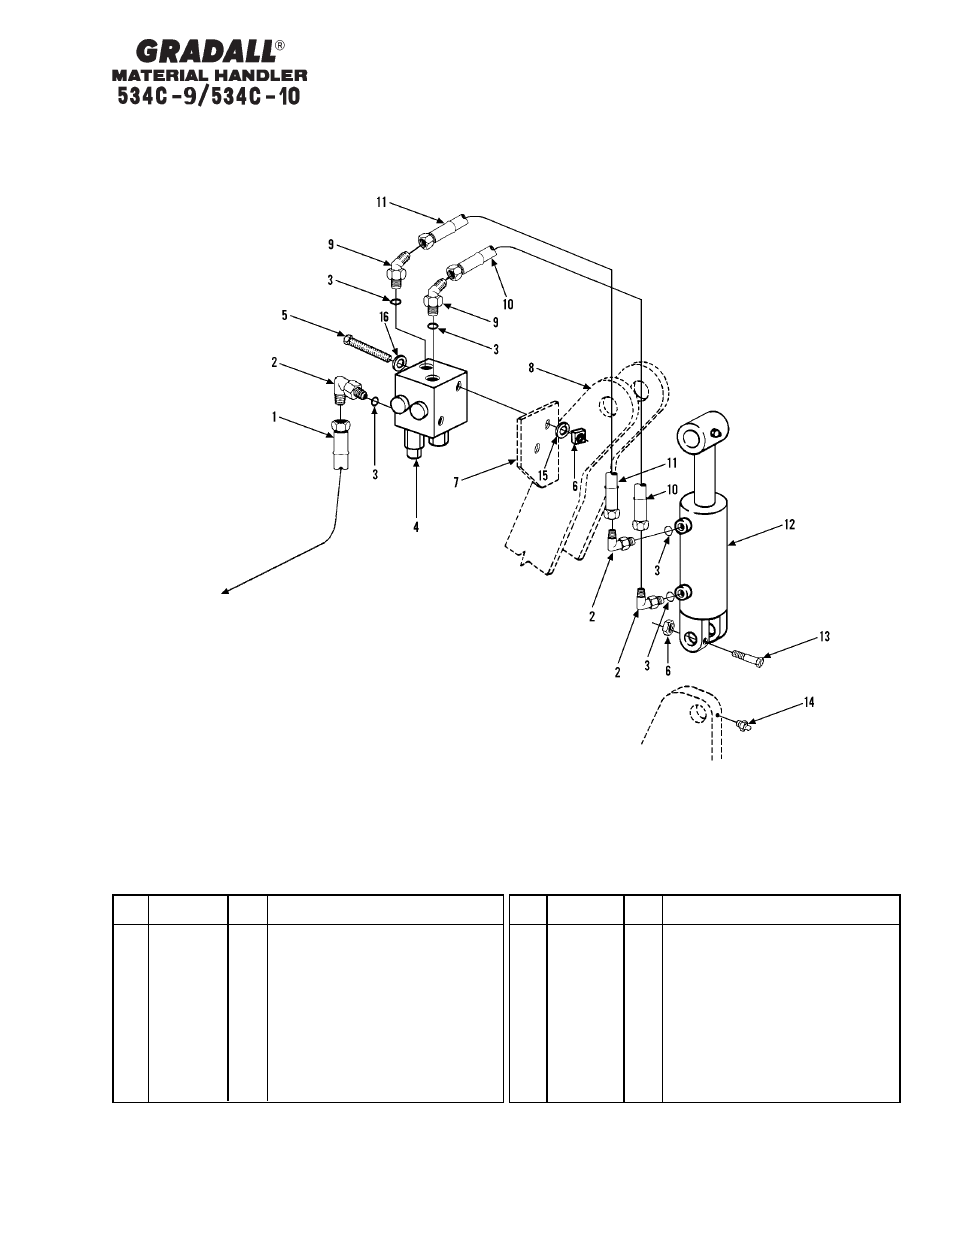 Hydraulic Circuits Stabilizer Cylinder Gradall 534c 10 Parts Basic Circuit Manual User Page 148 255